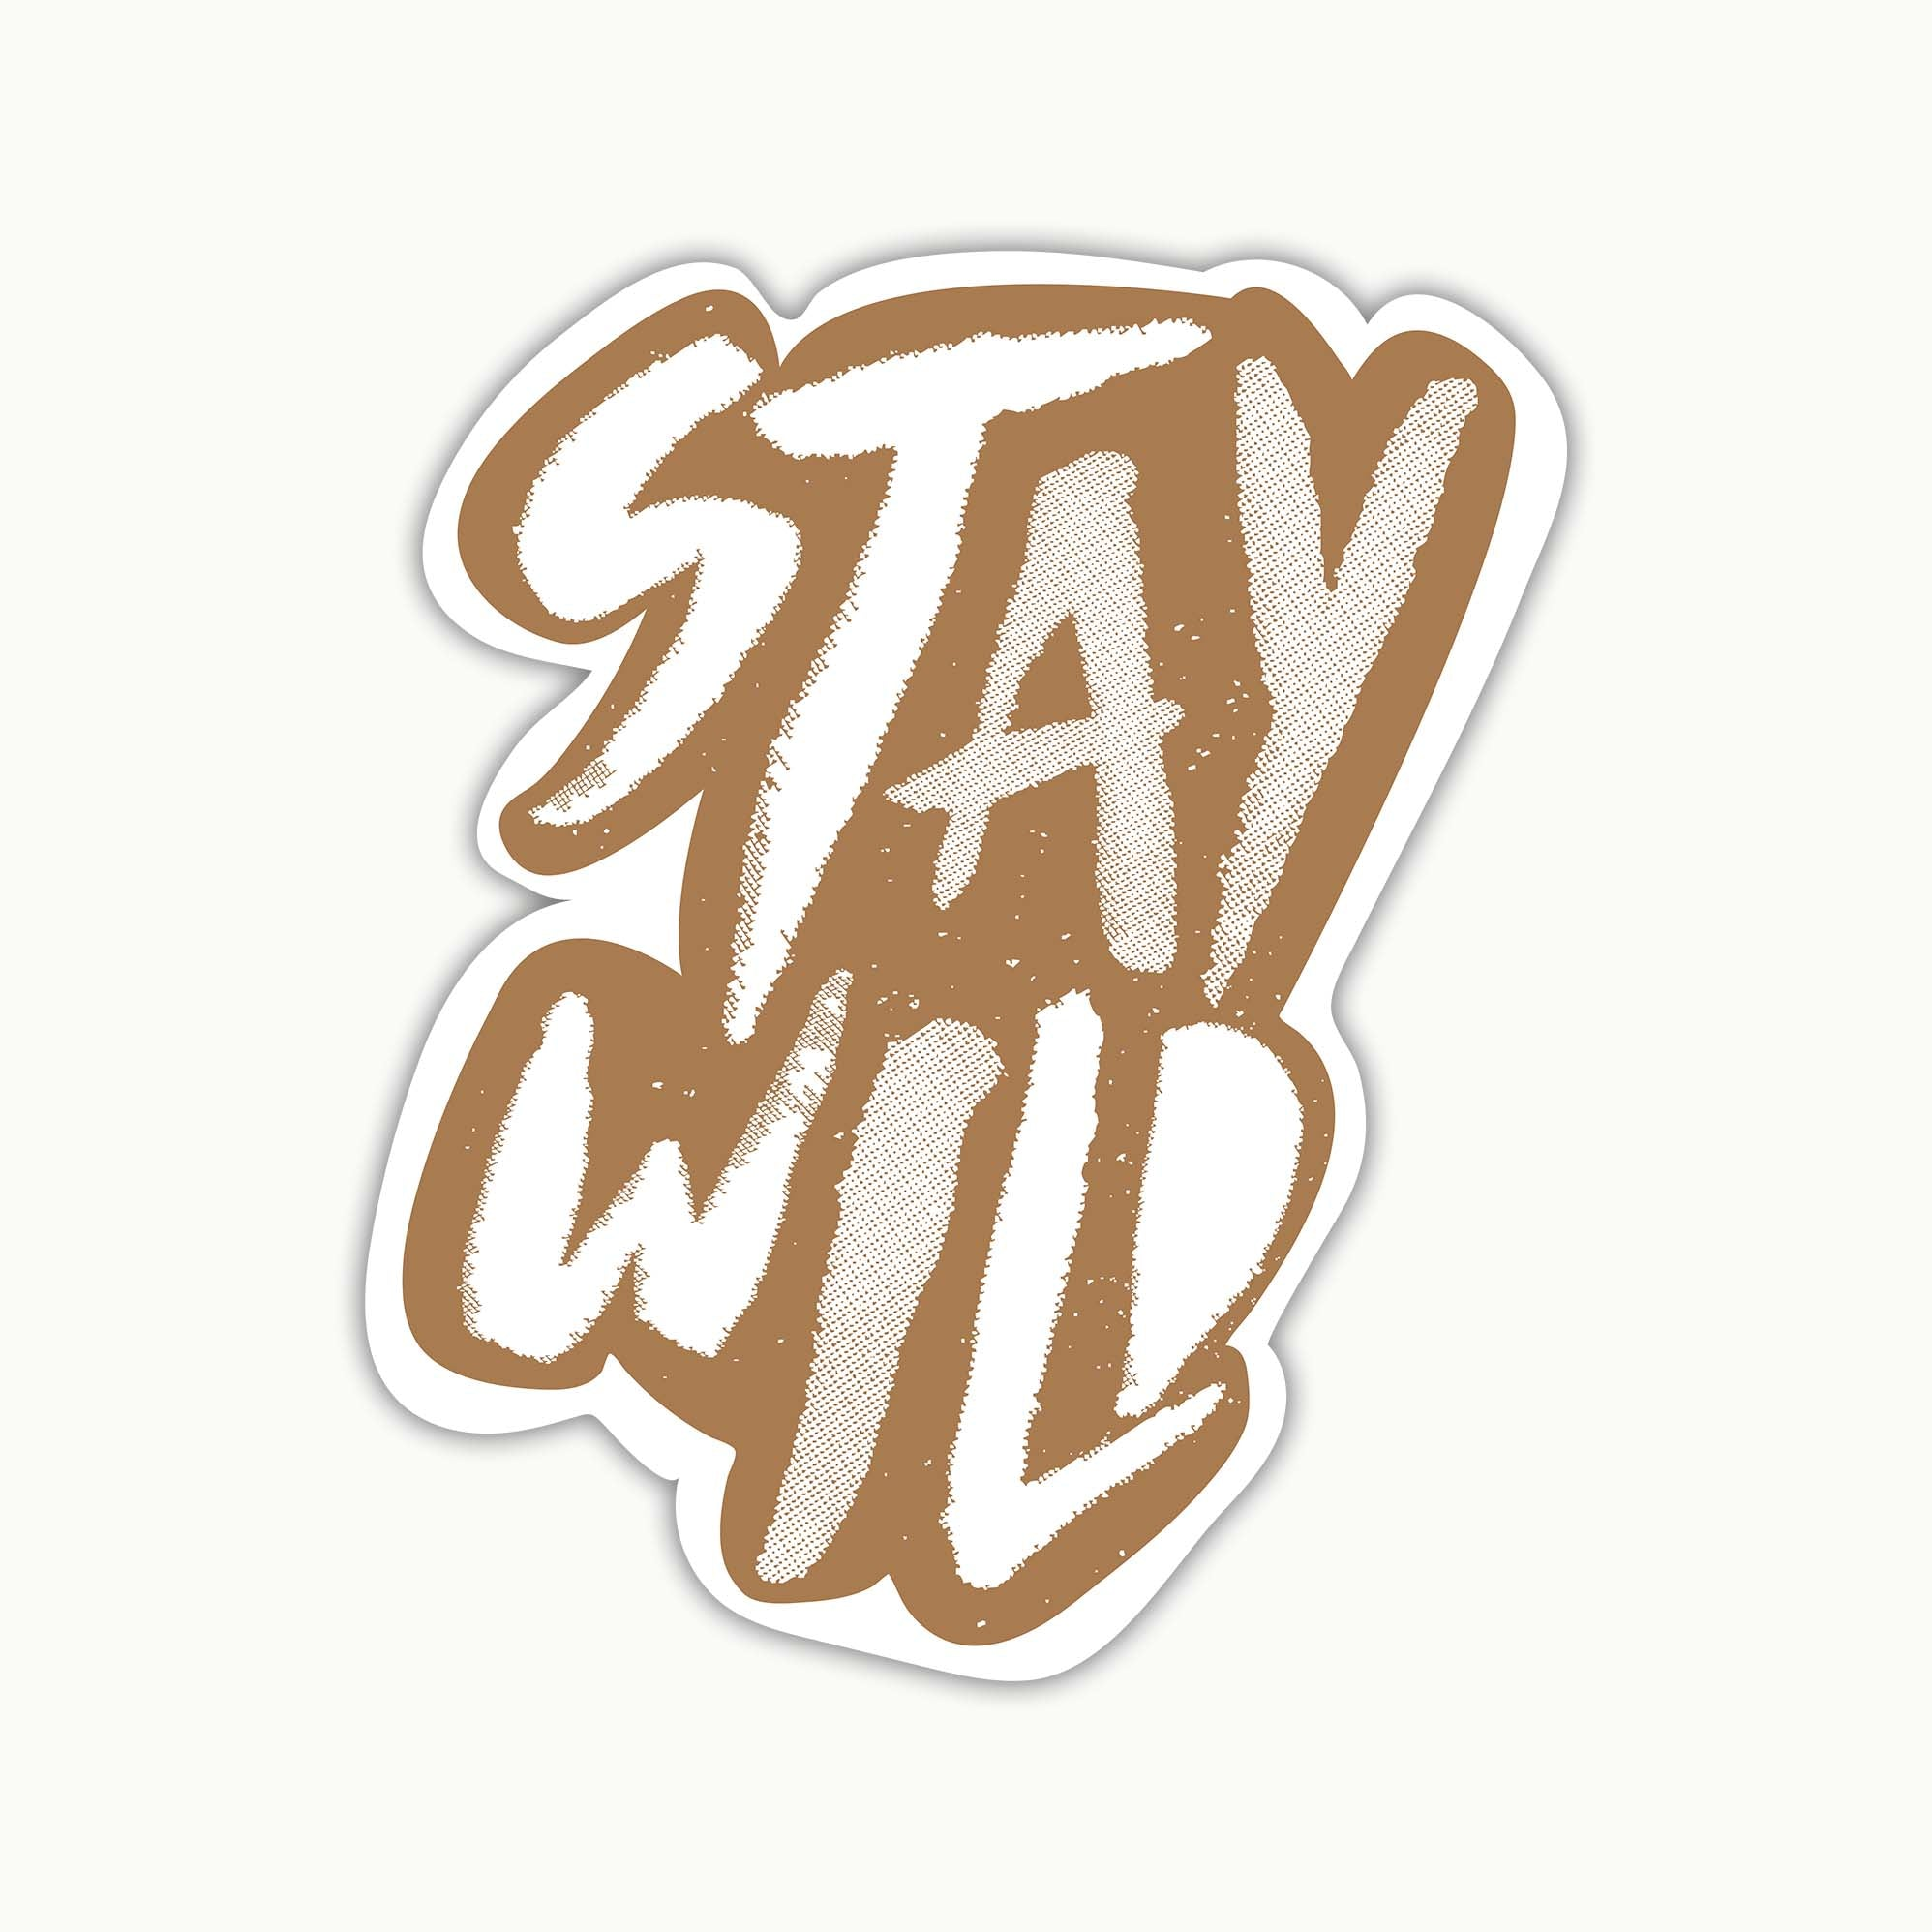 Stay Wild | Sticker